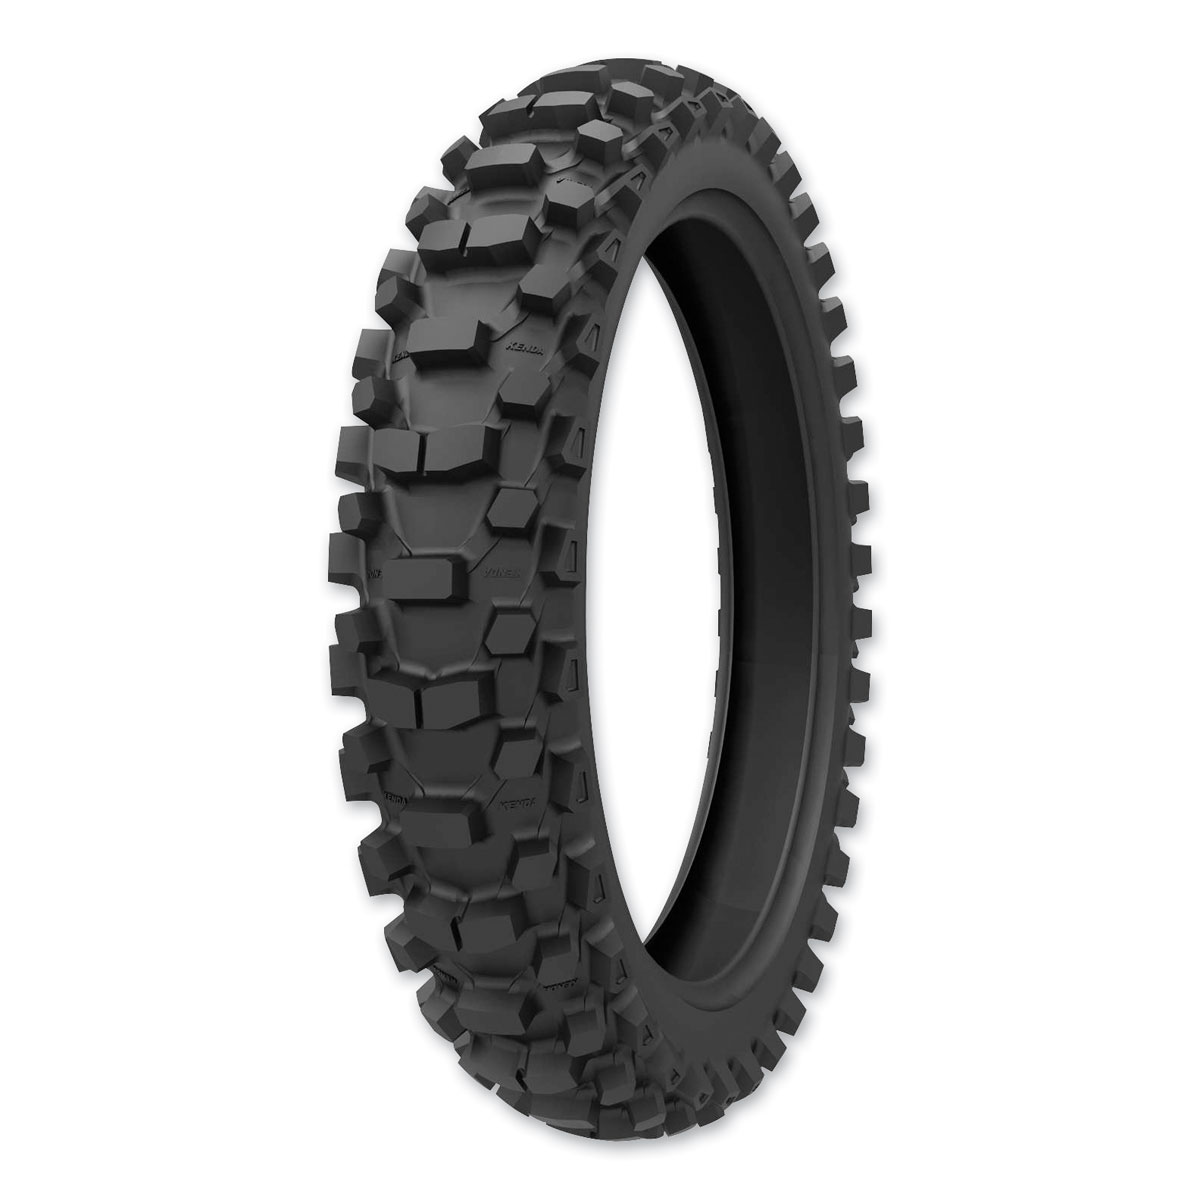 Kenda Tires K785 Millville II 100/90-19 Rear Tire